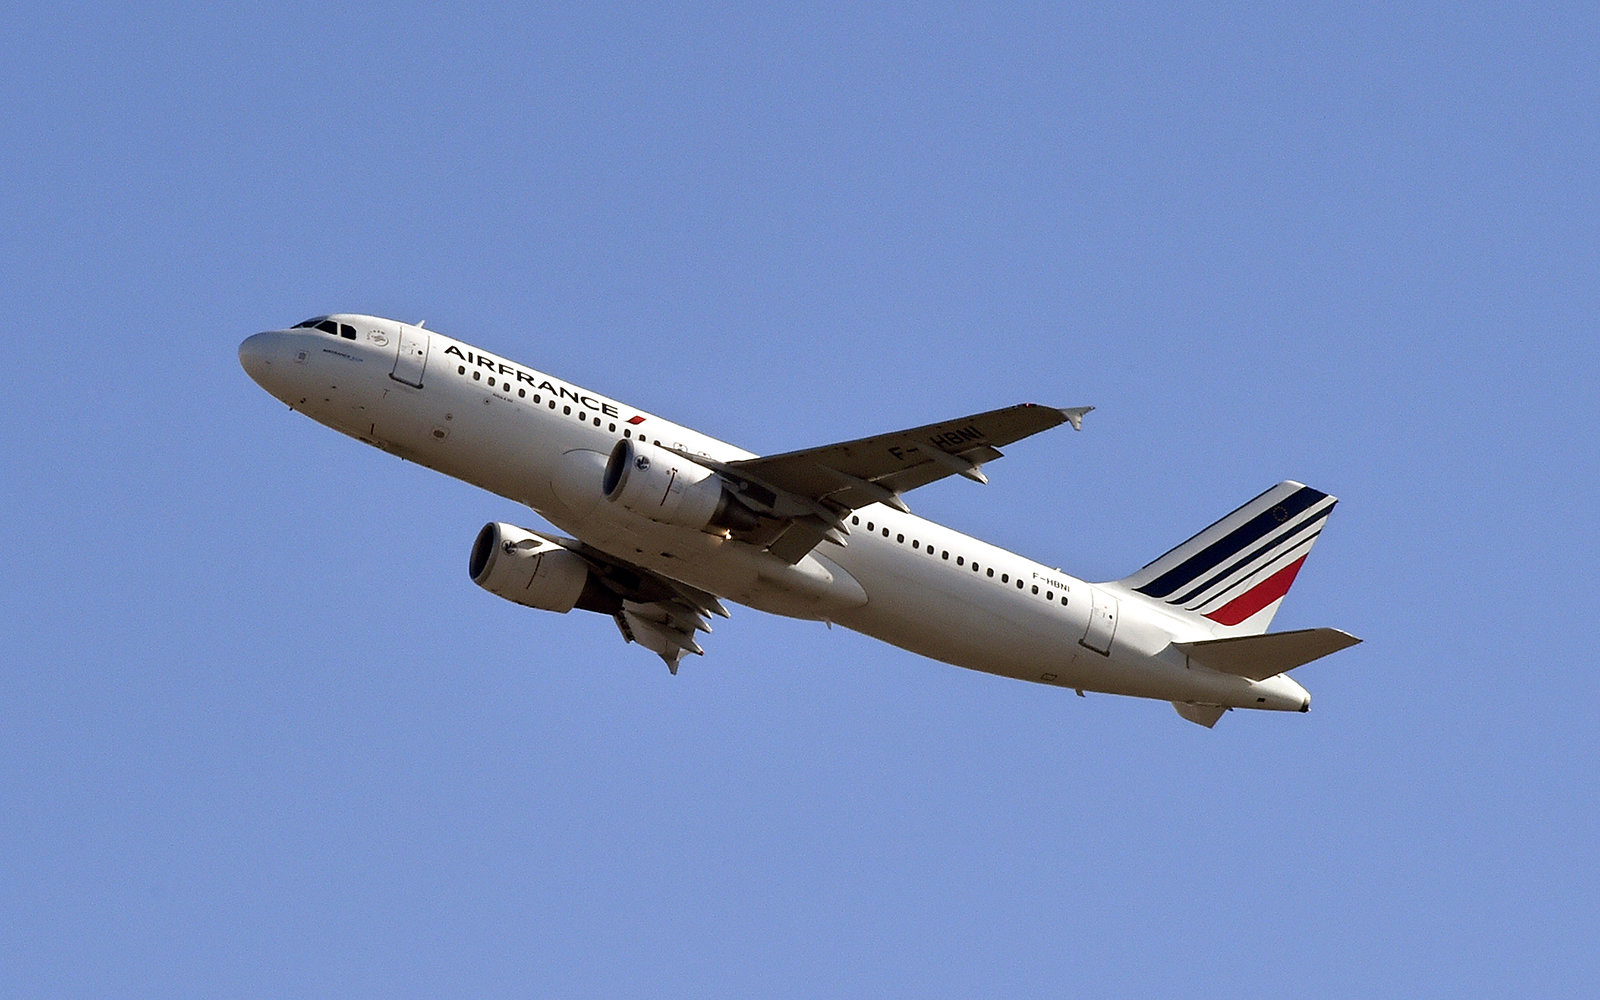 A Drone Came Within 16 Feet of Hitting an Air France Plane